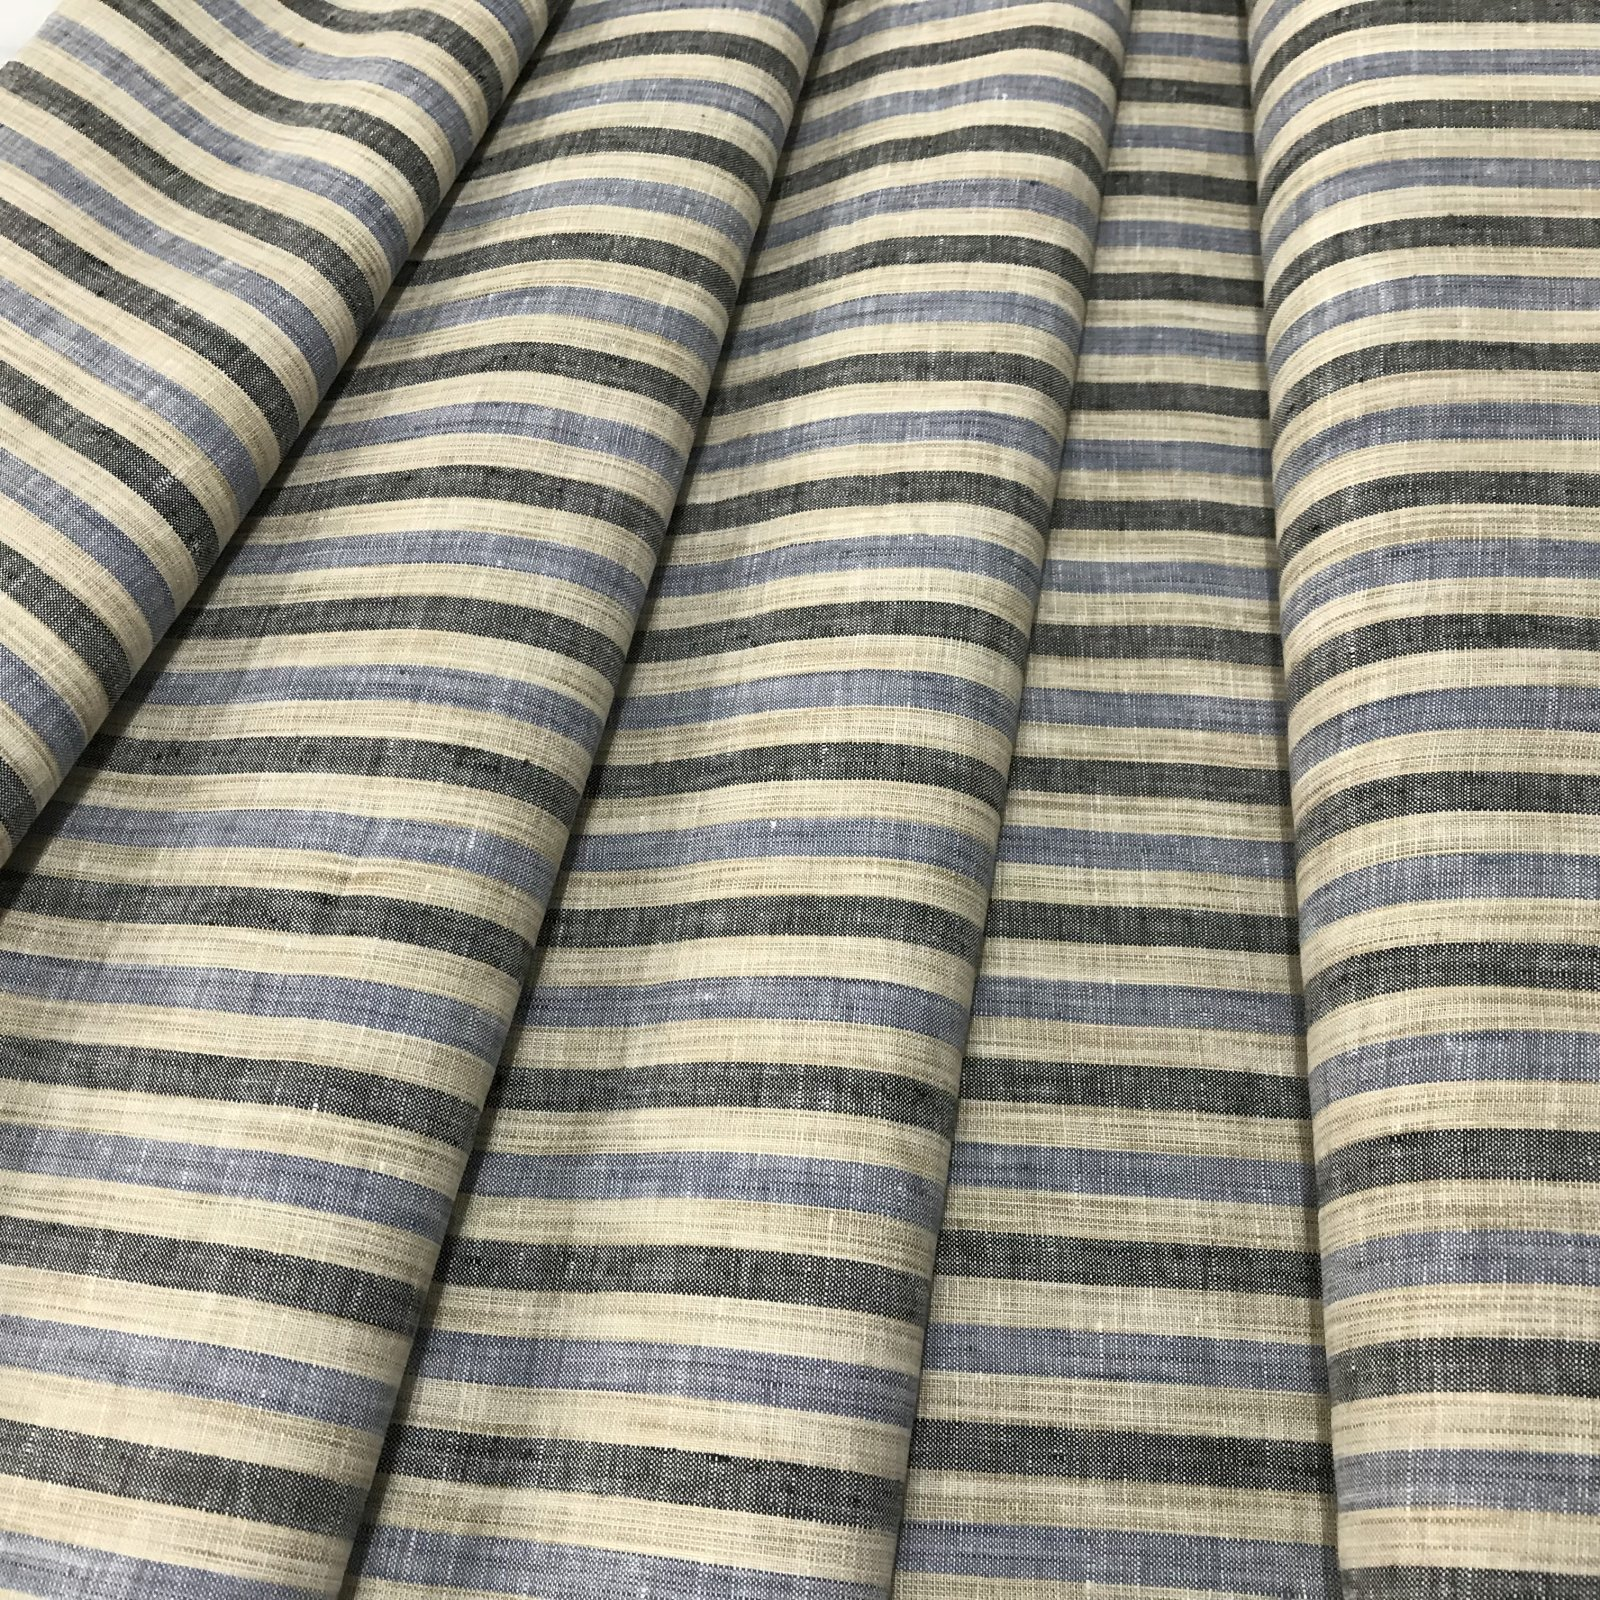 Linen - Tan and Blue Stripes